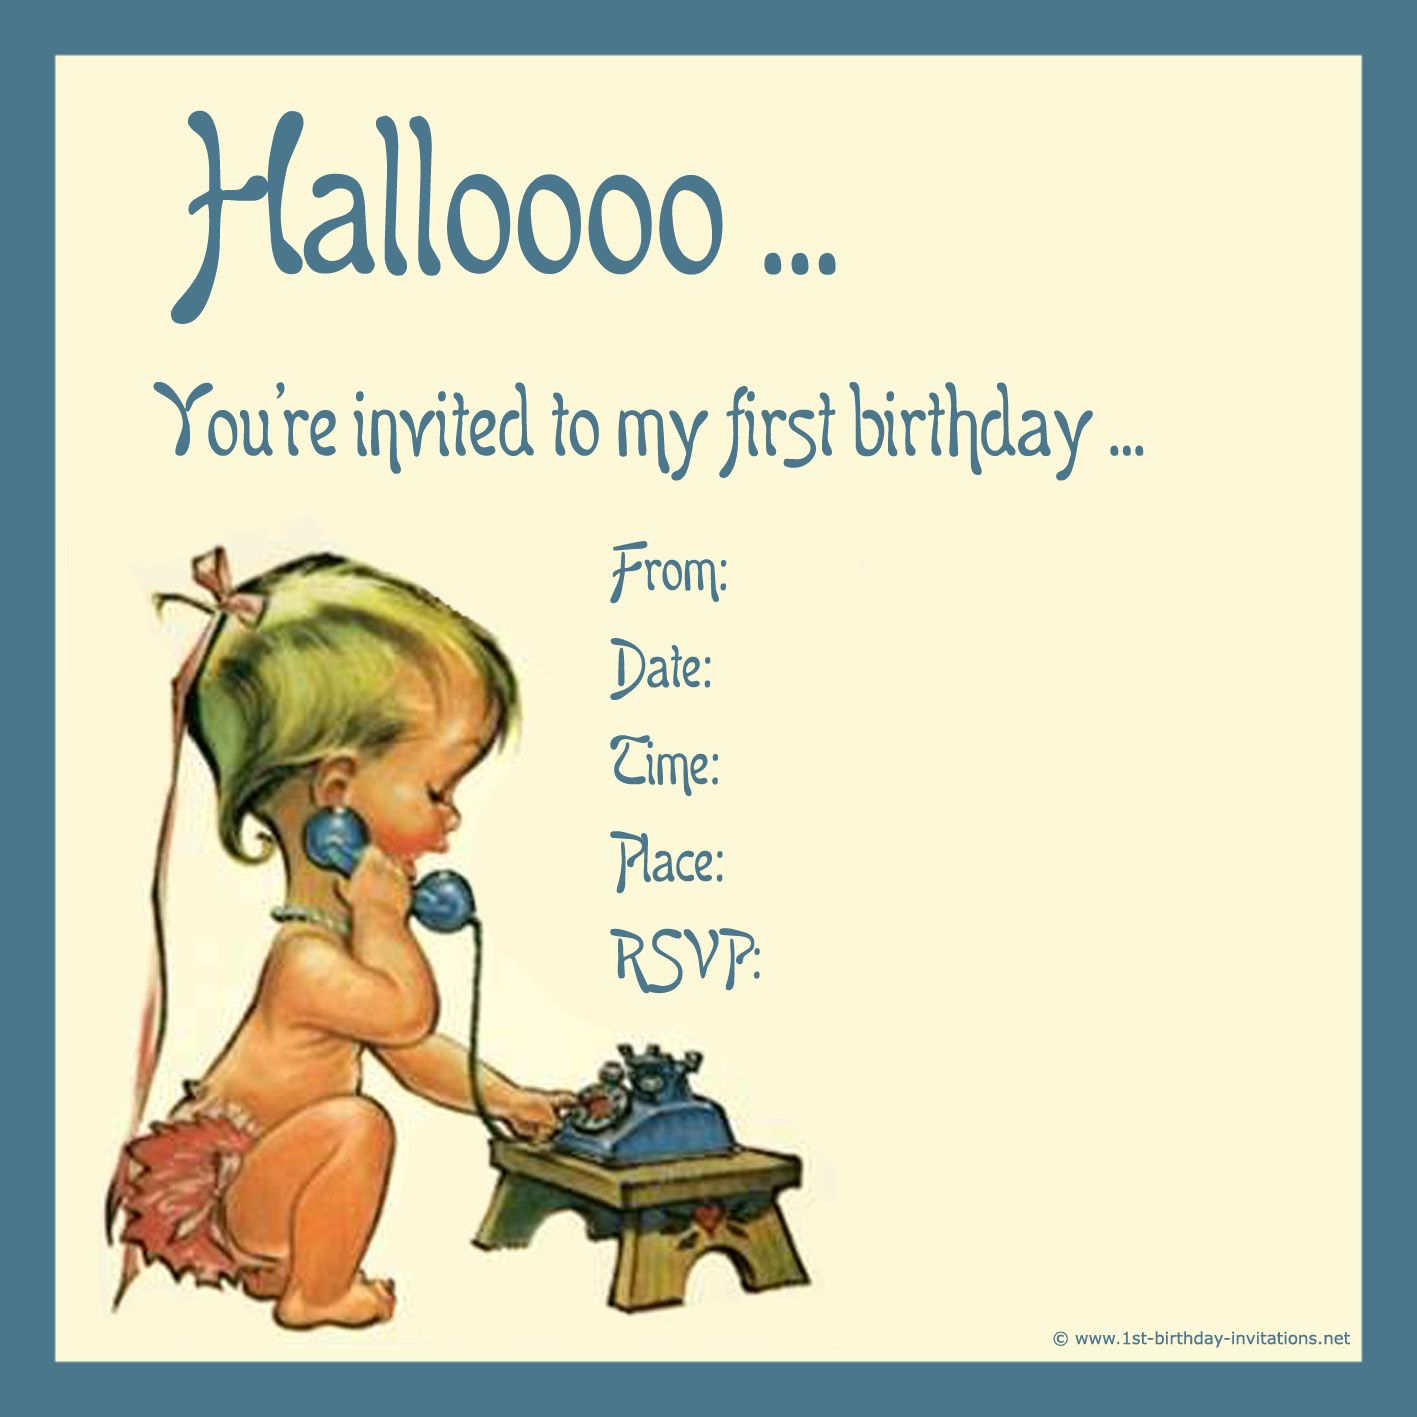 Greetings Cards Th Birthday Messages Friend Sayings Online Card Coffee  Greeting Mugs Old For Friends Vintage Invitation Baby On Phone Personalized  Happy ...